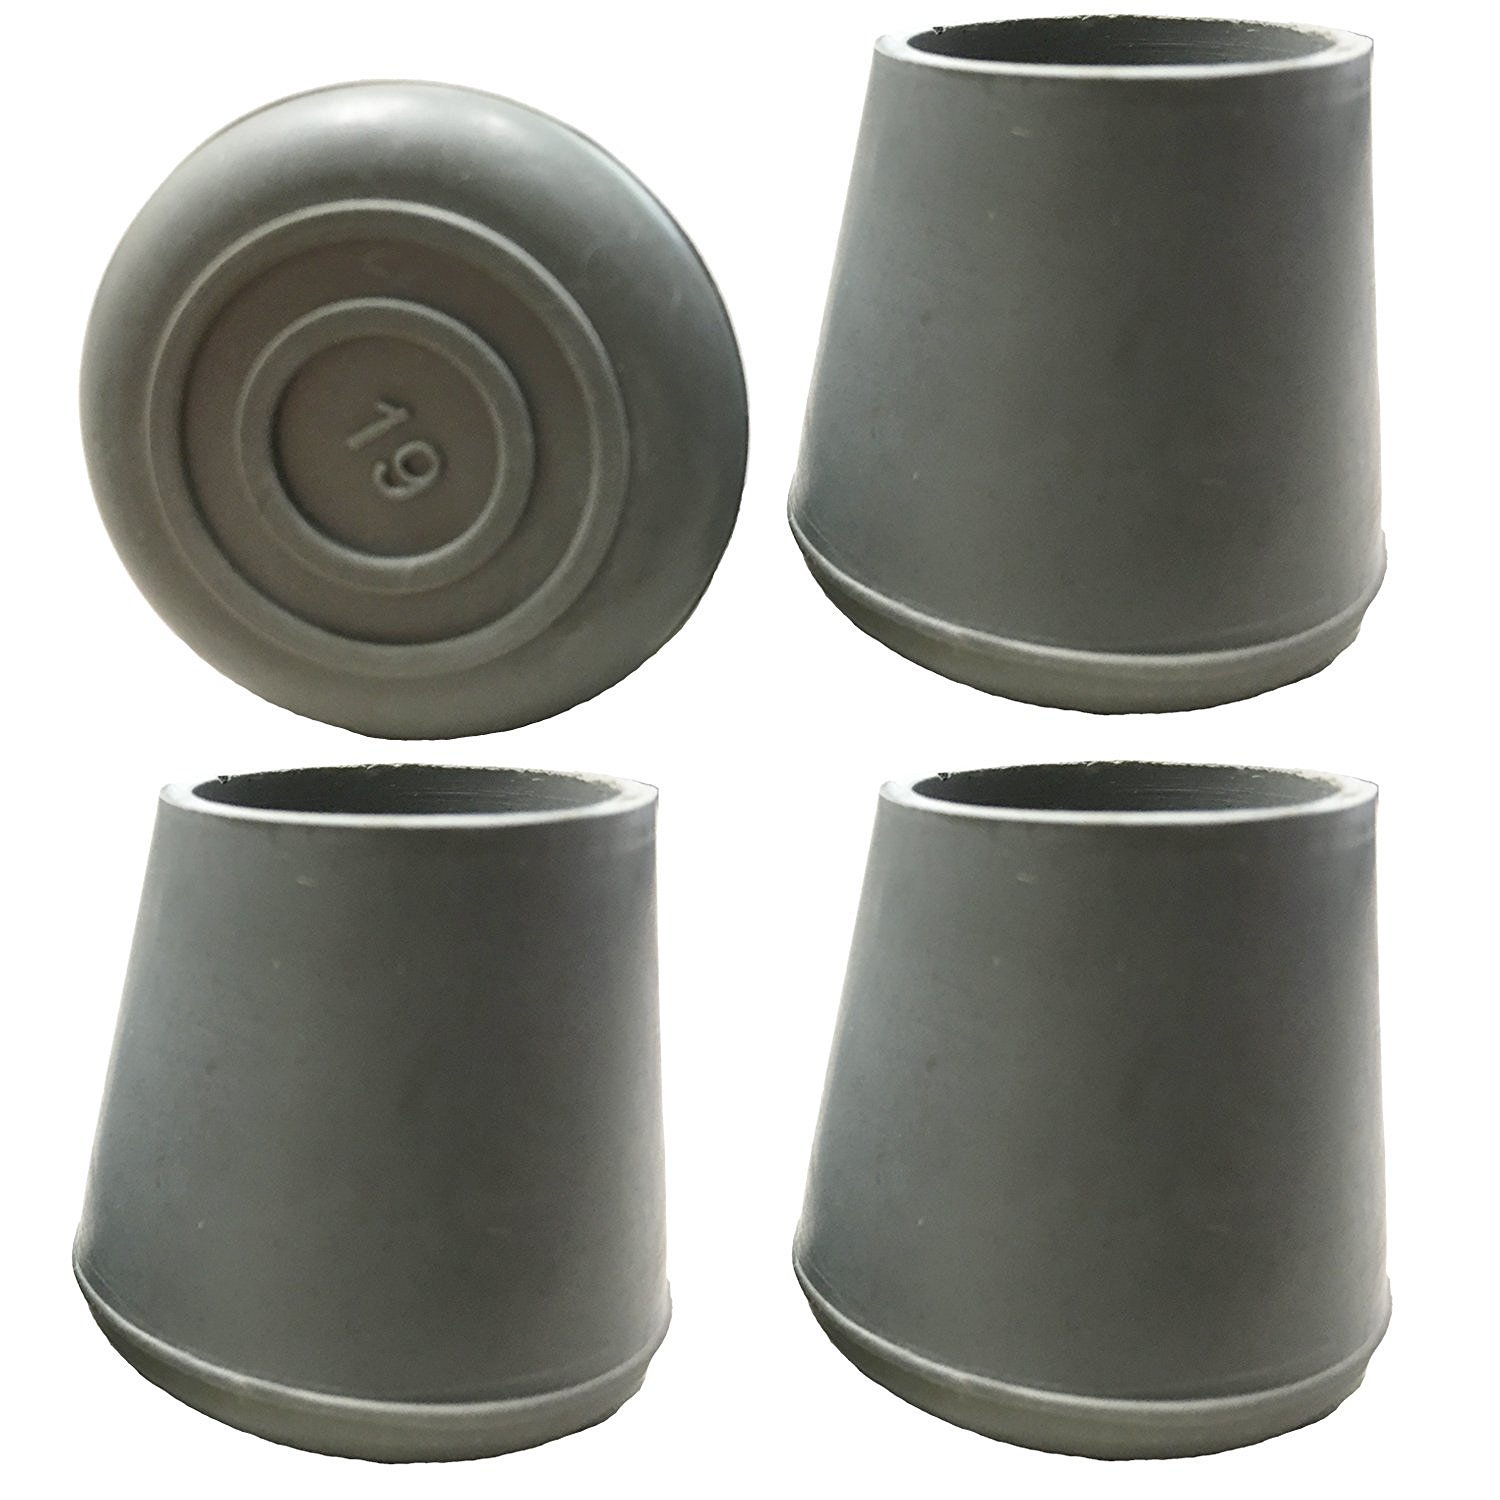 Pcp Replacement Walker/Commode Tips, Grey, 7/8 inch